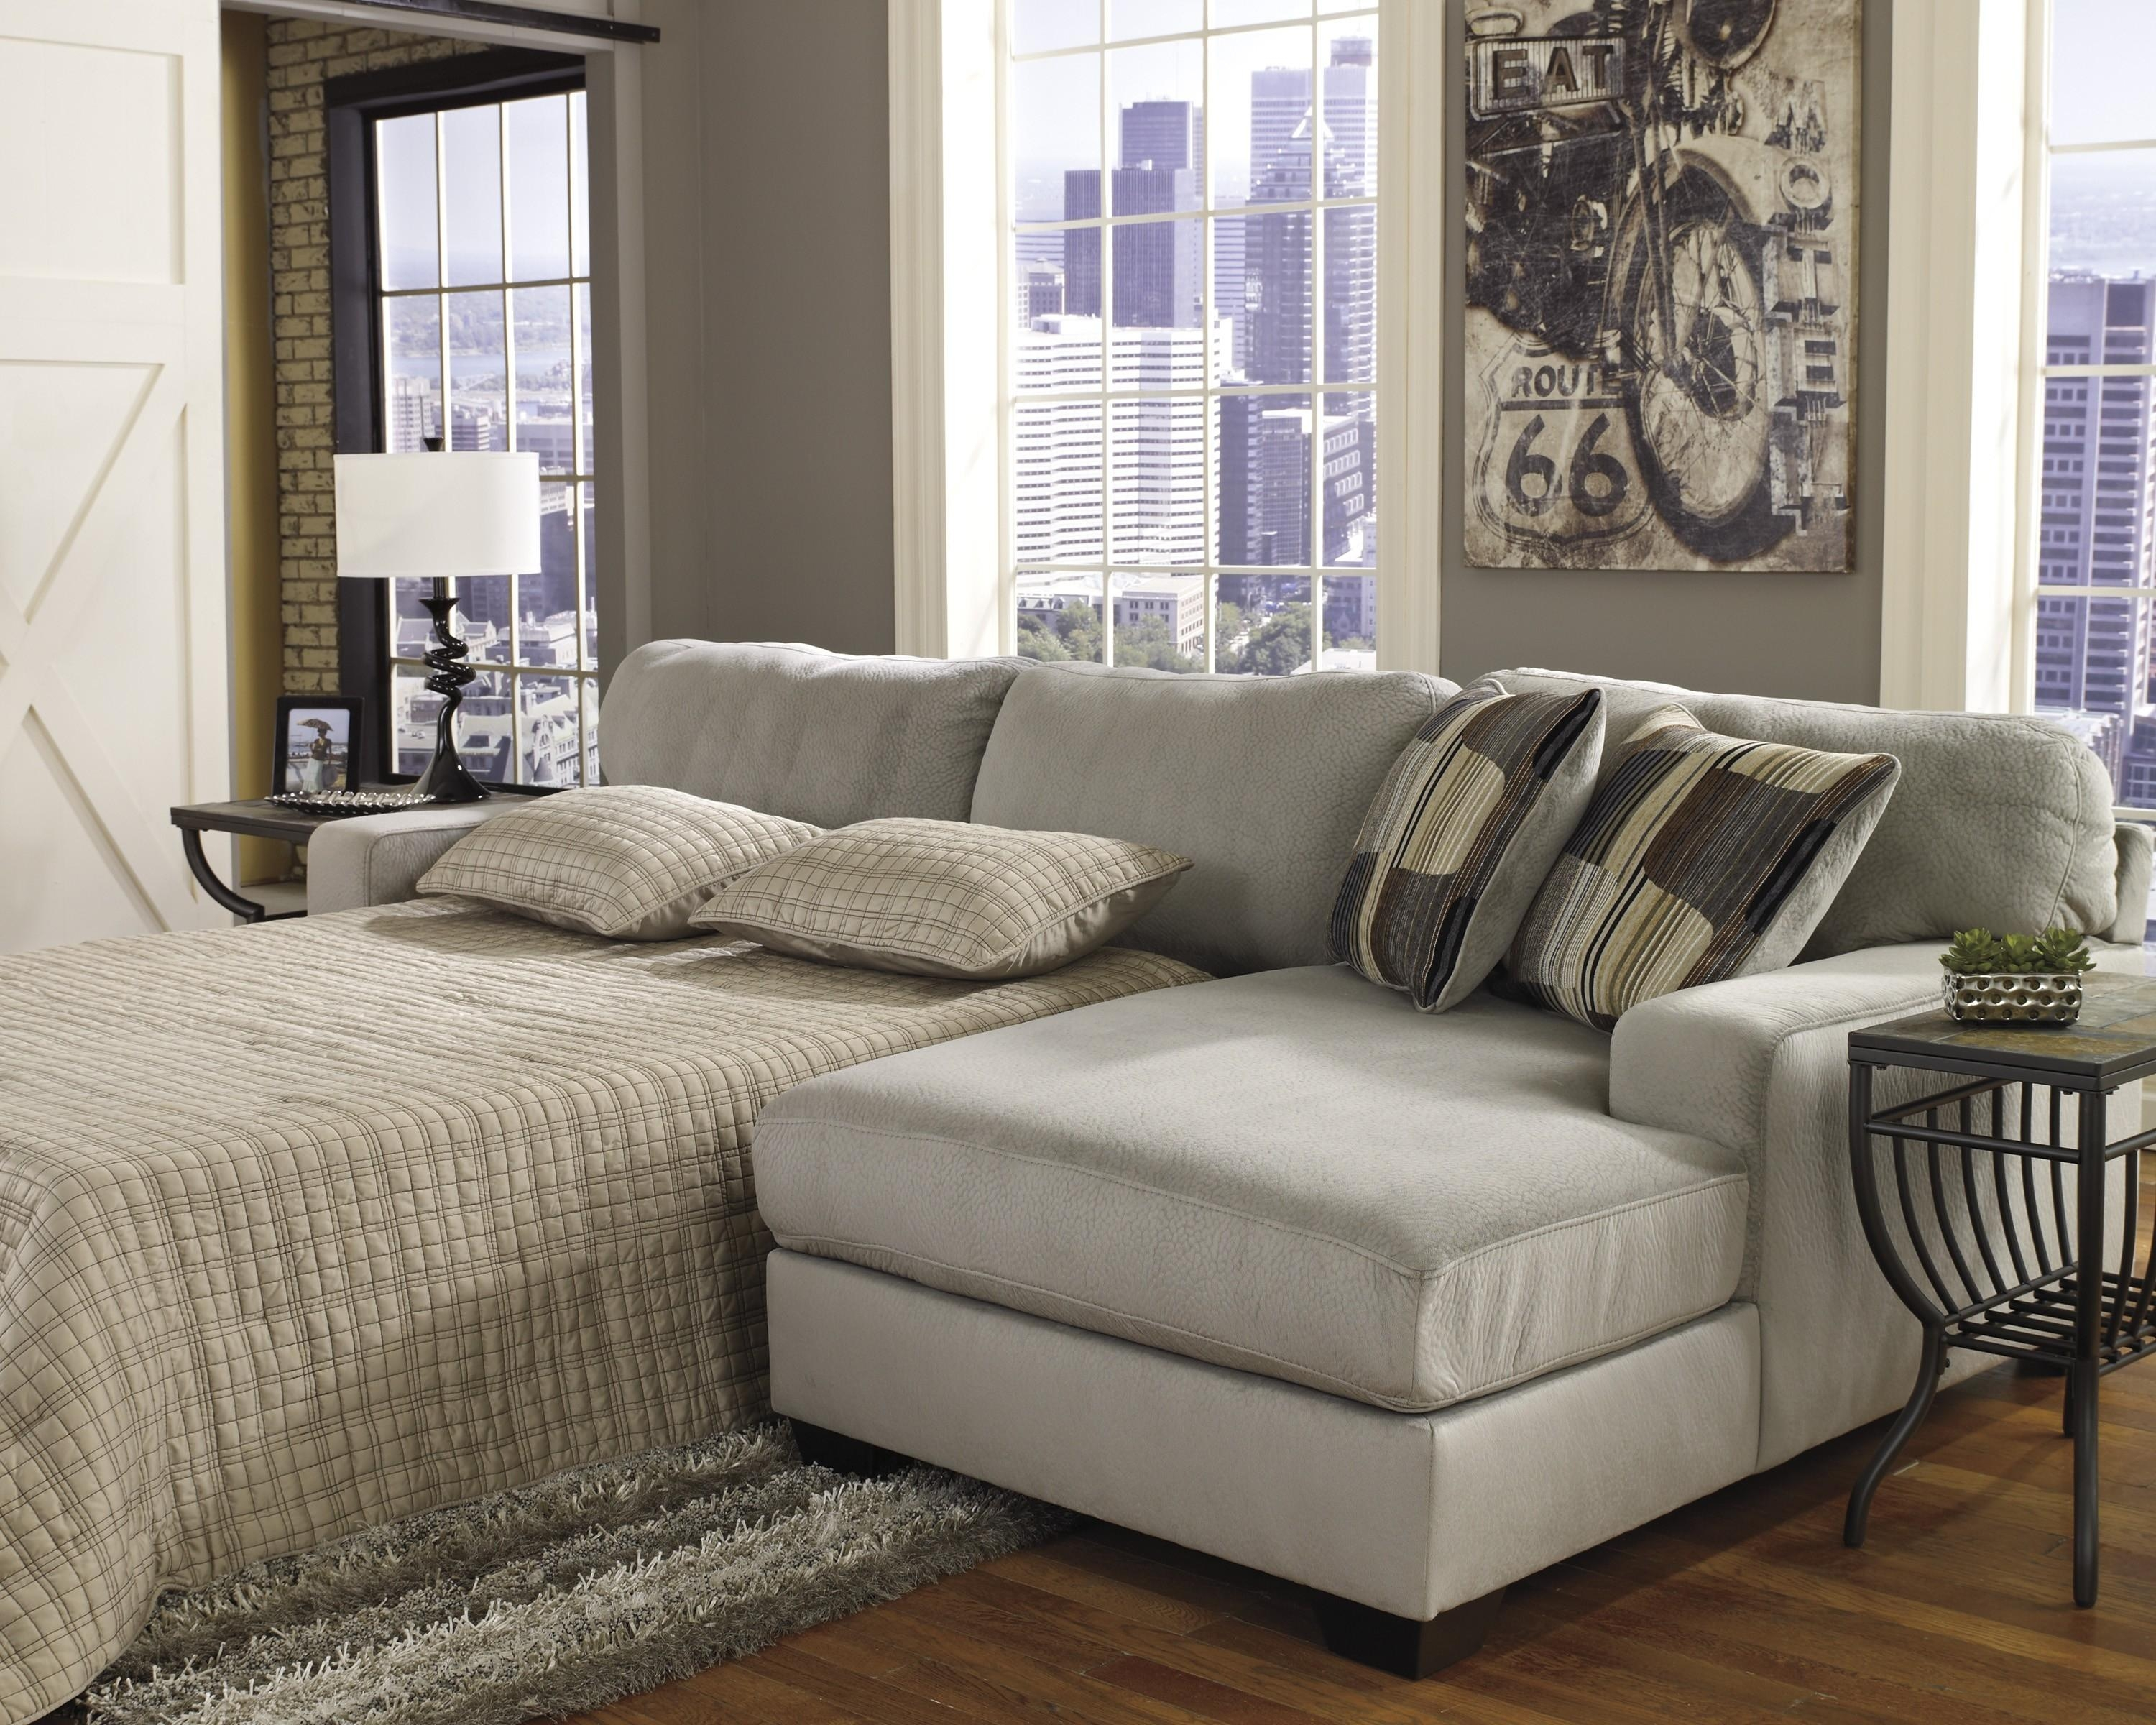 Lovable Corner Sleeper Sofa Perfect Furniture Home Design Ideas In Corner Sleeper Sofas (View 2 of 20)